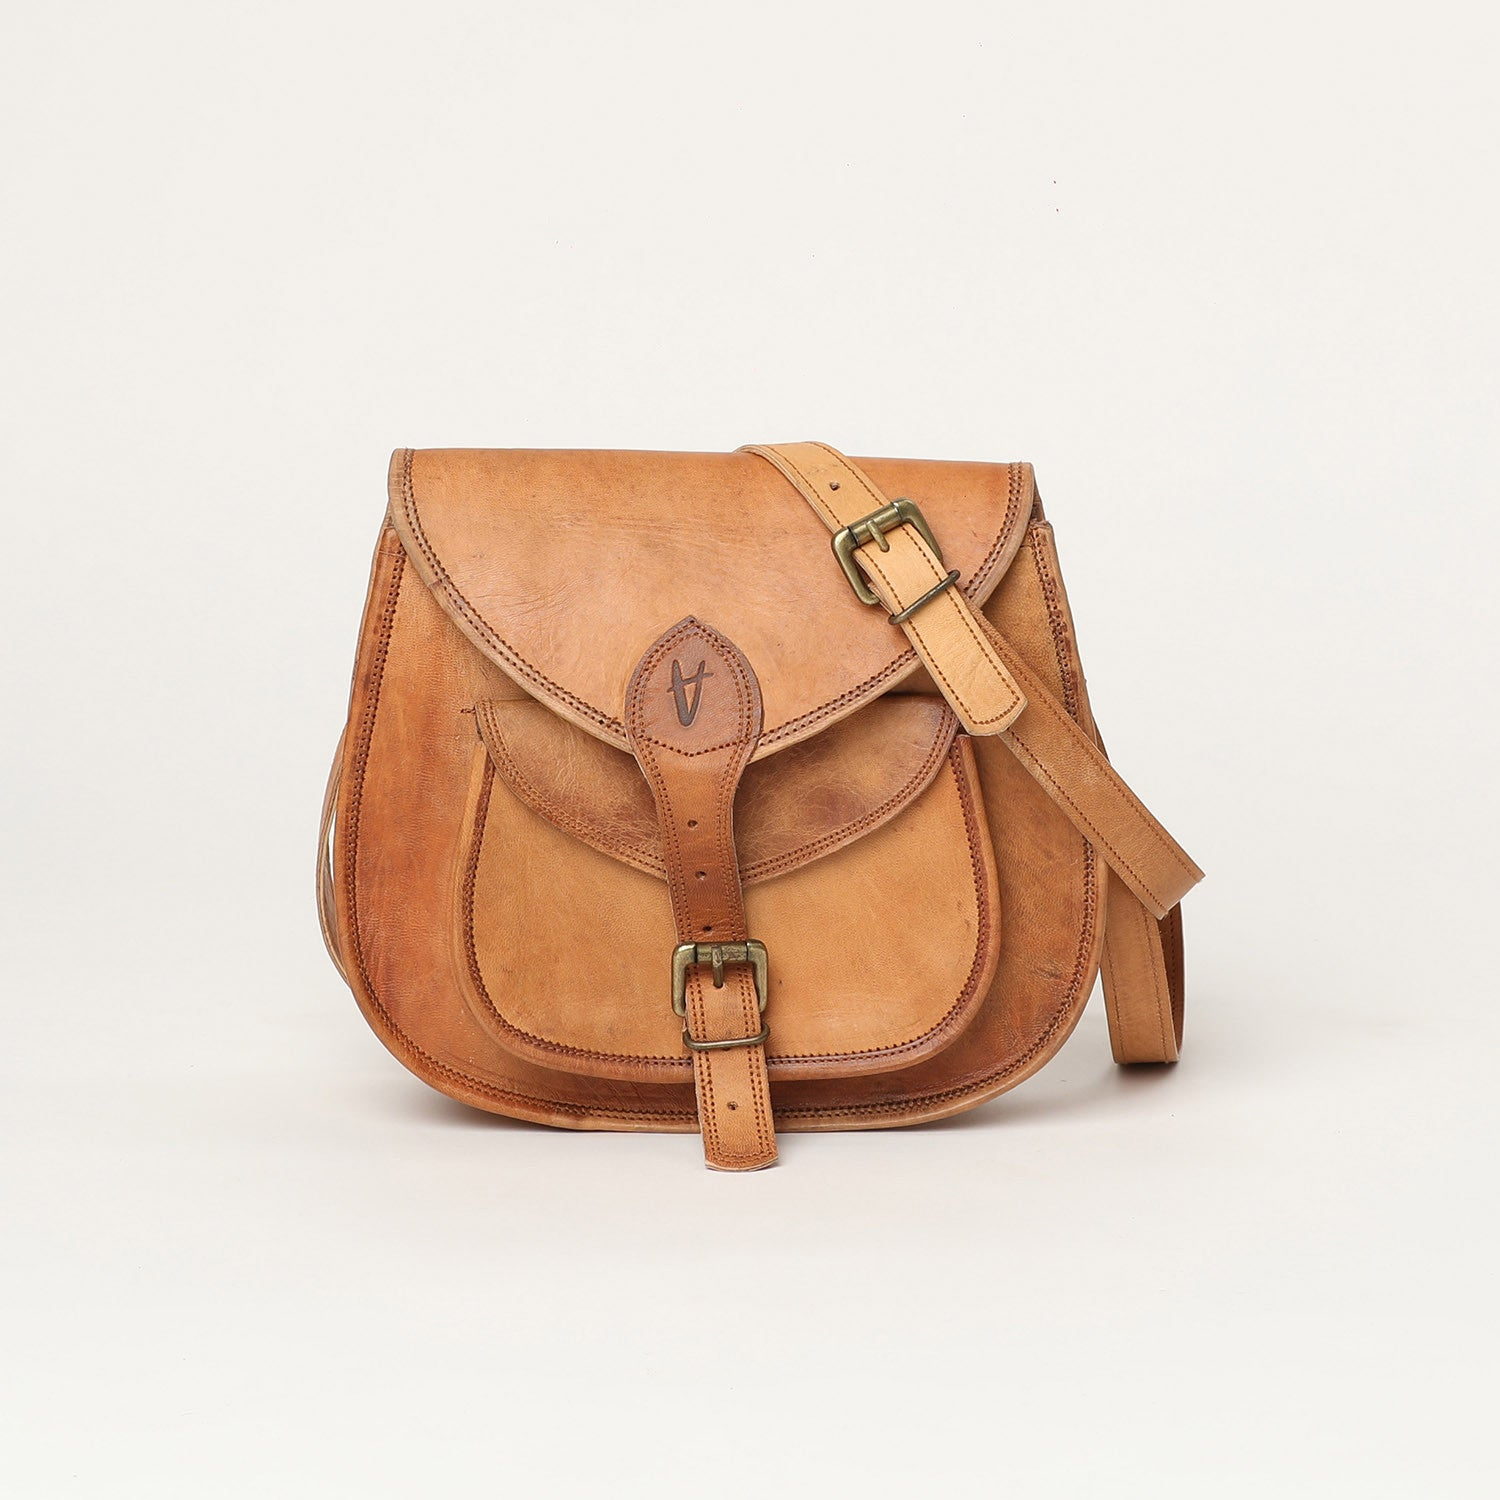 Cross body bag large - leather bags